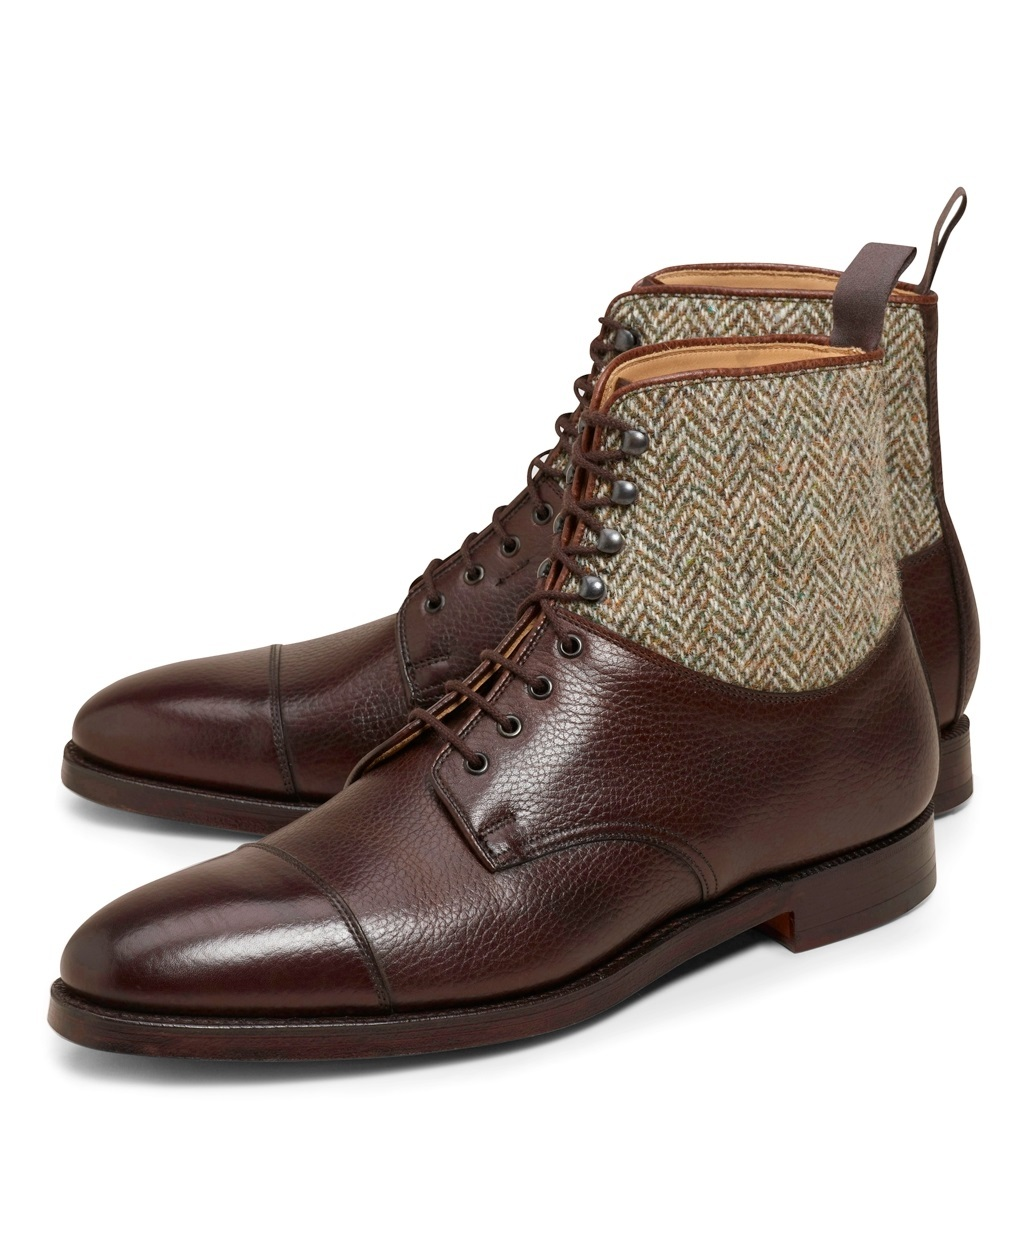 Handmade men brown leather boots, tweed fabric boot for ...